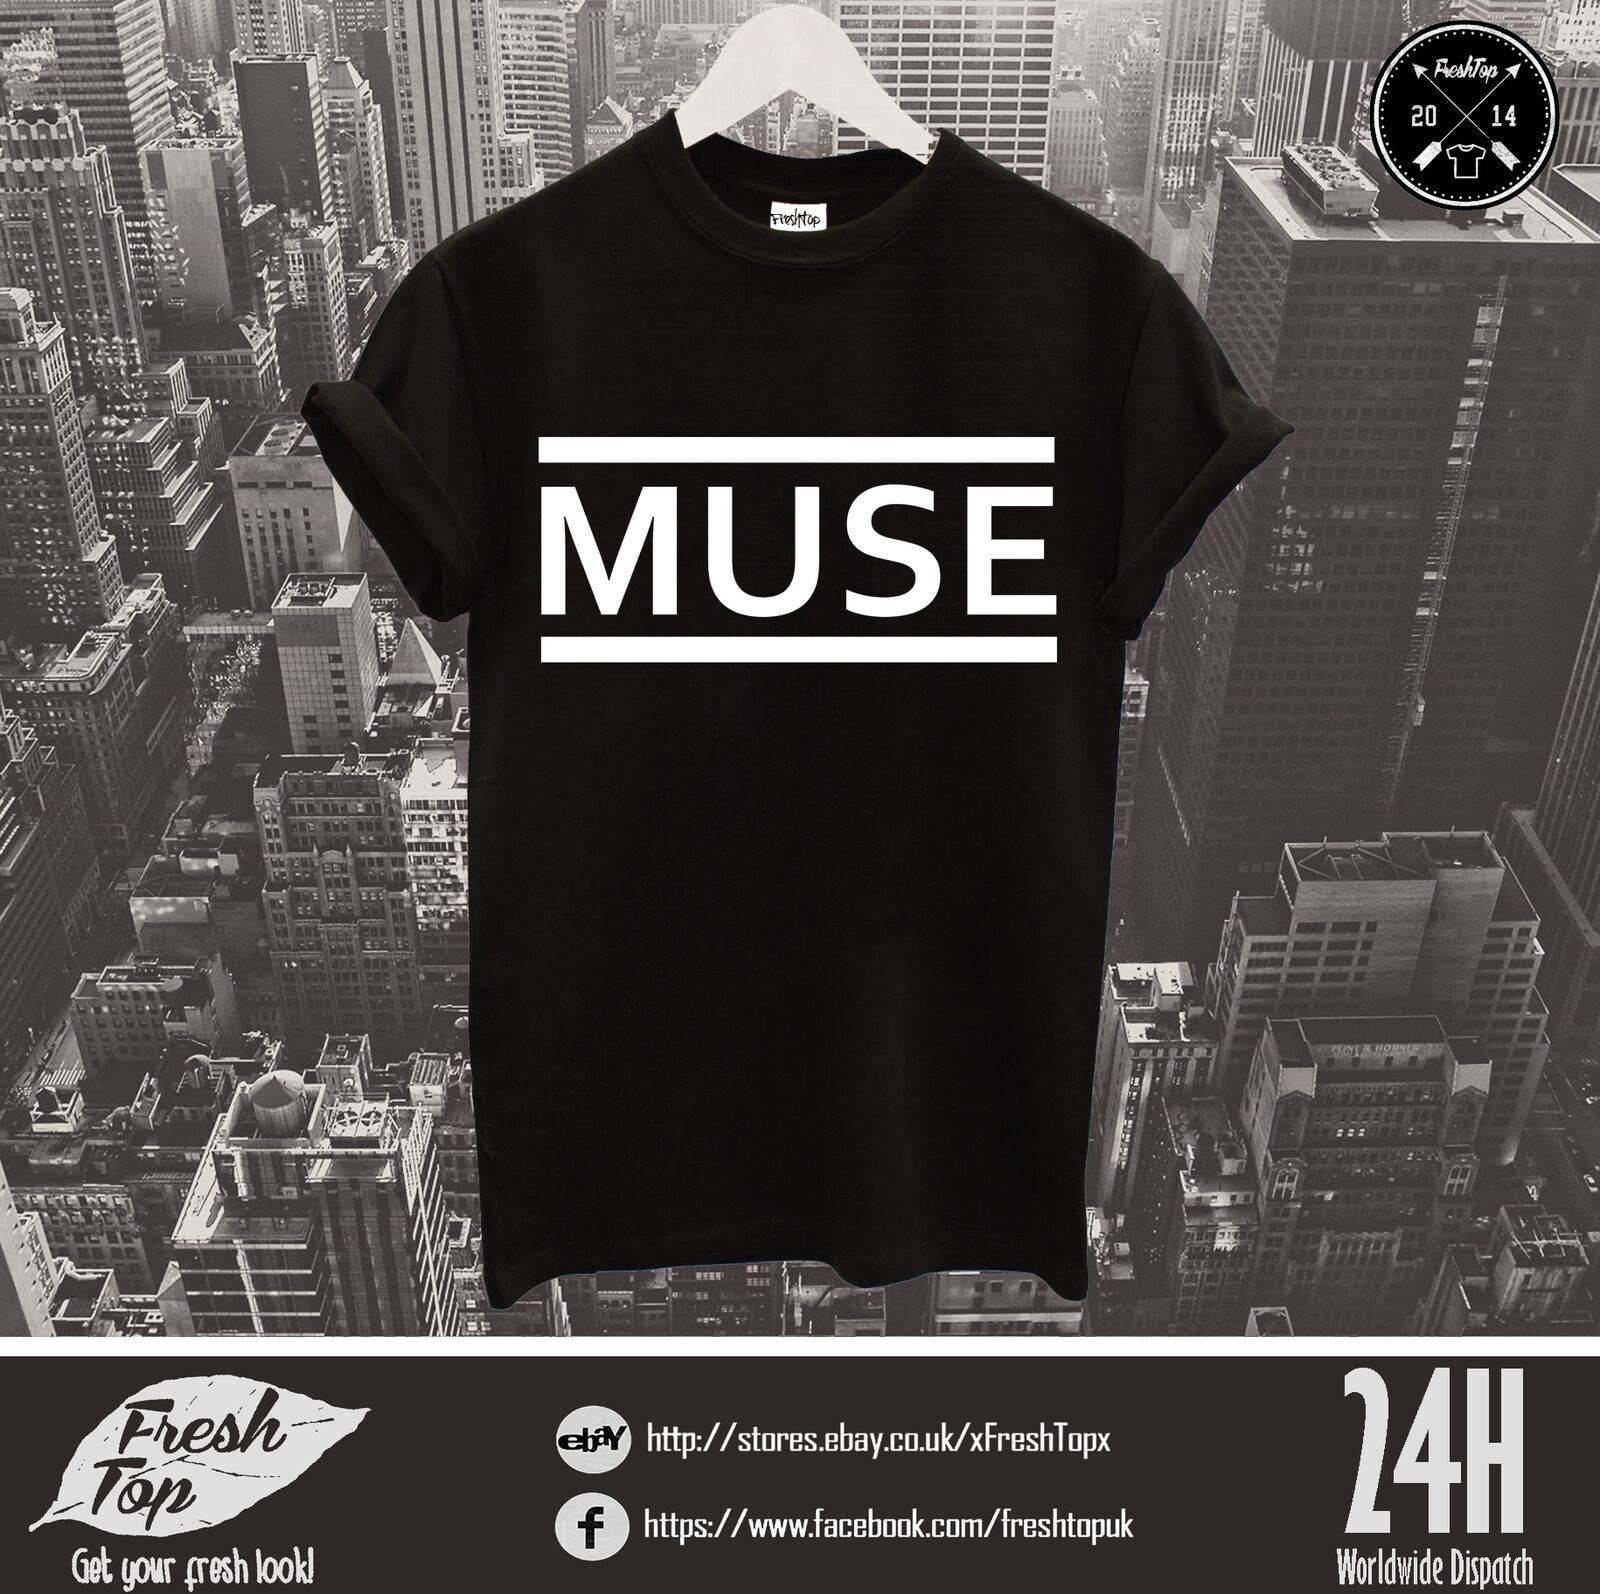 Muse Logo T Shirt Festival Tour Musique Groupe Rock Law The 2nd Law Rock  Origin of Symmetry 333fbd 21ed11ec6d38